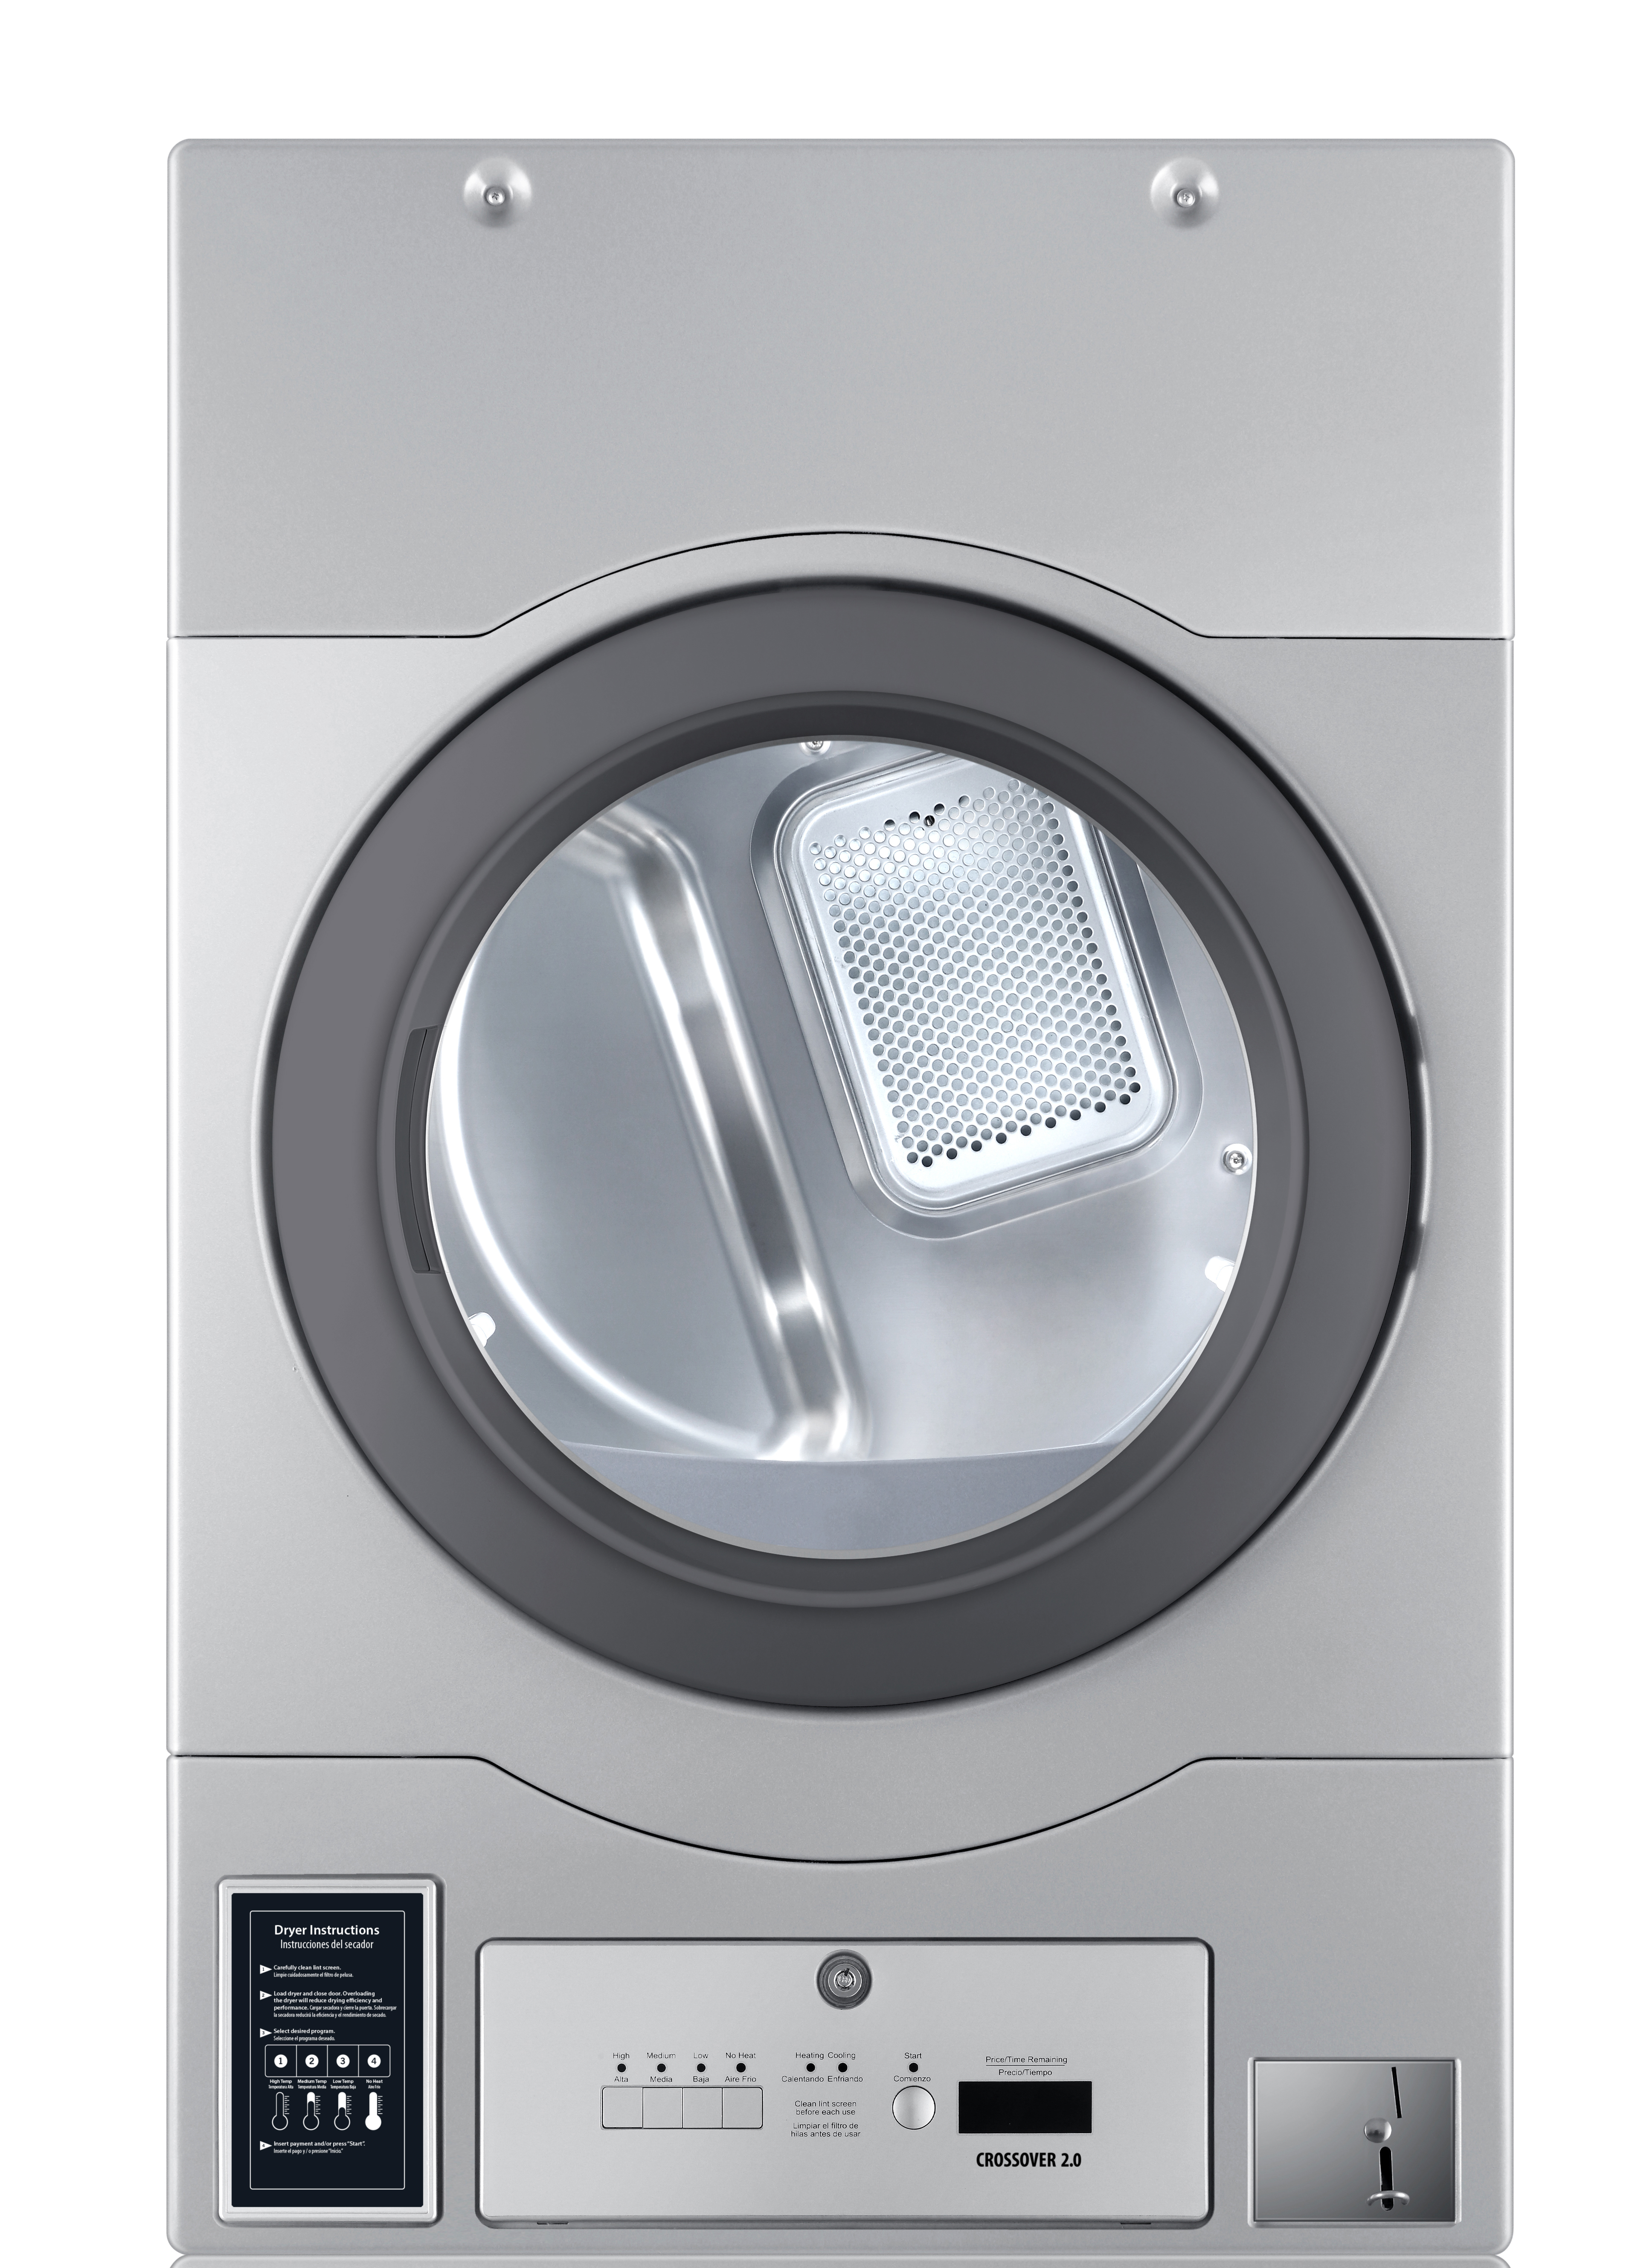 "Crossover Laundry Crossover True Commercial Laundry - 7.0 CF Bottom Control Electric Dryer, Coin Option Included/Card Ready, Silver, 27"" (Stacked application)"